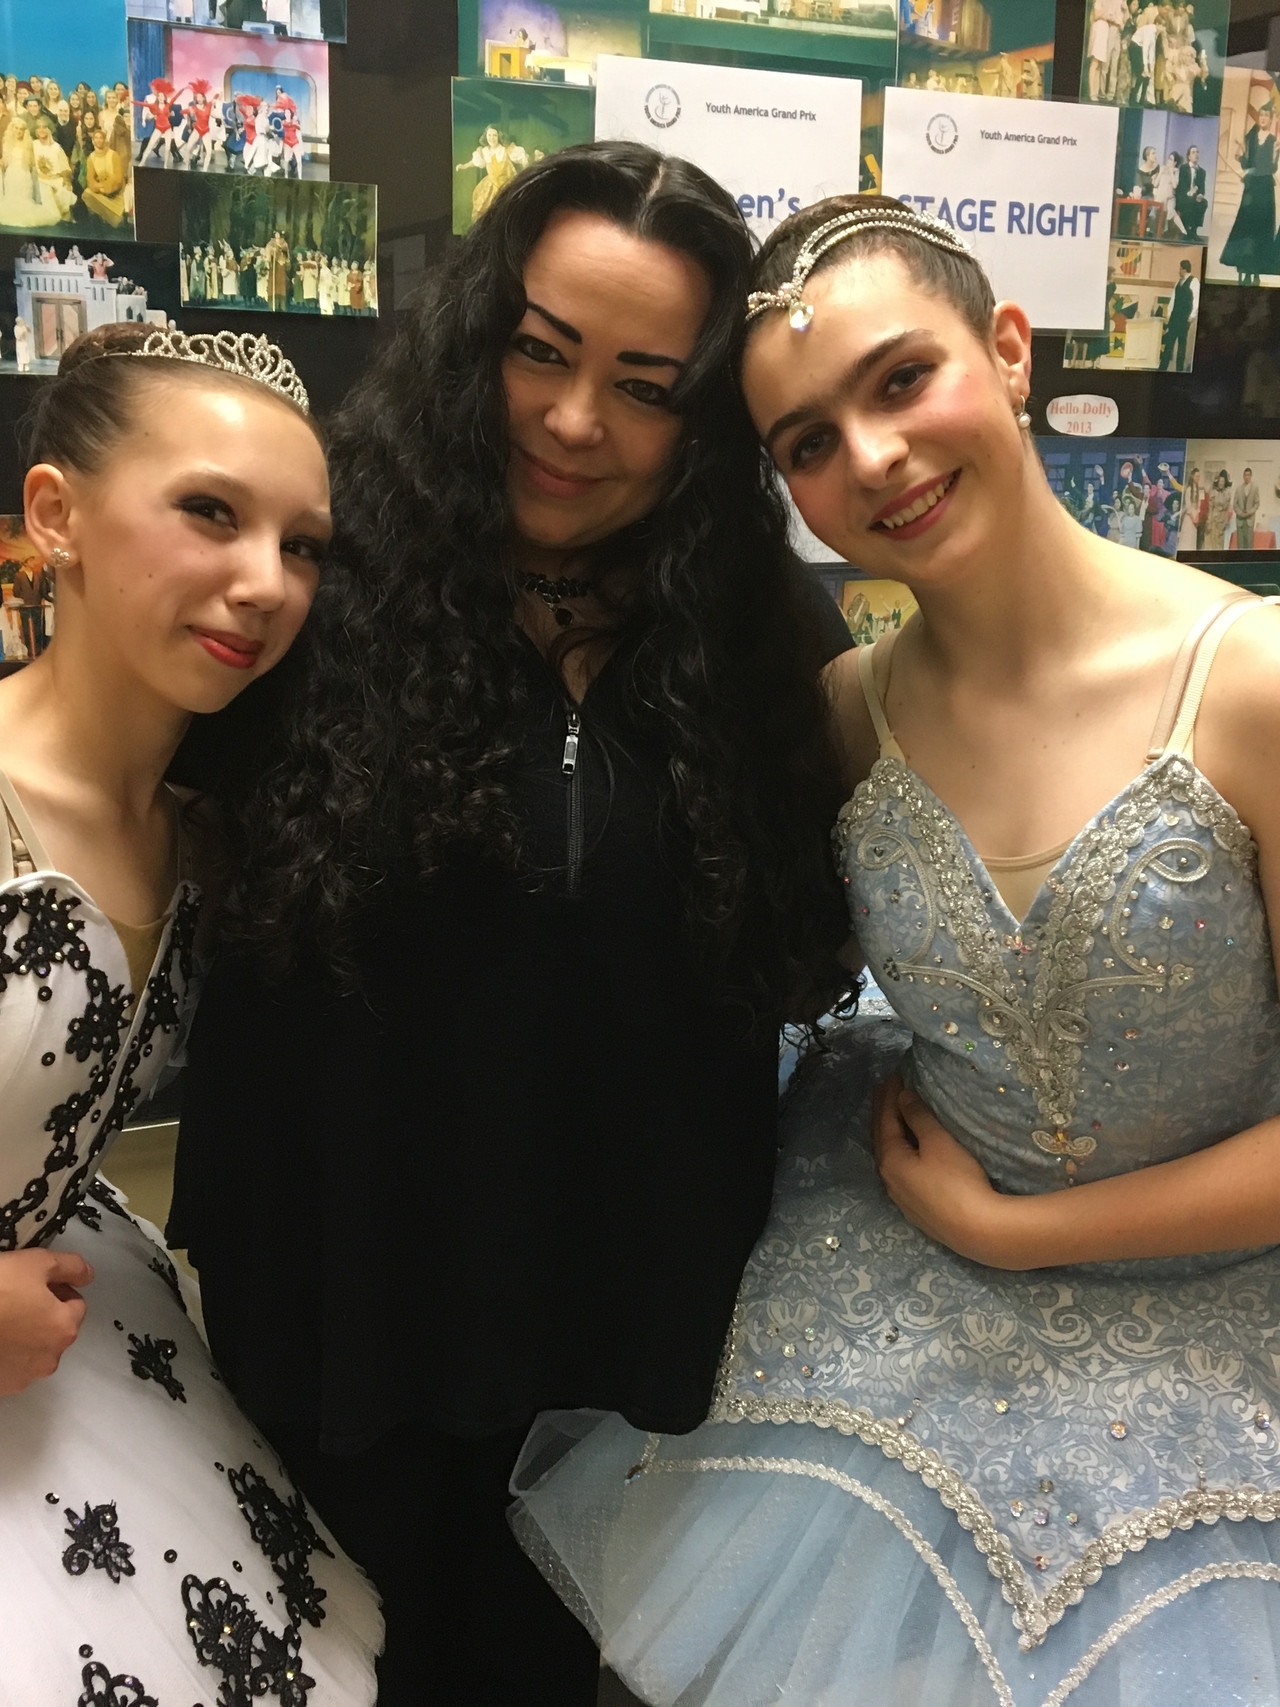 Diane, Ms Vera and Isabelle backstage before competition.